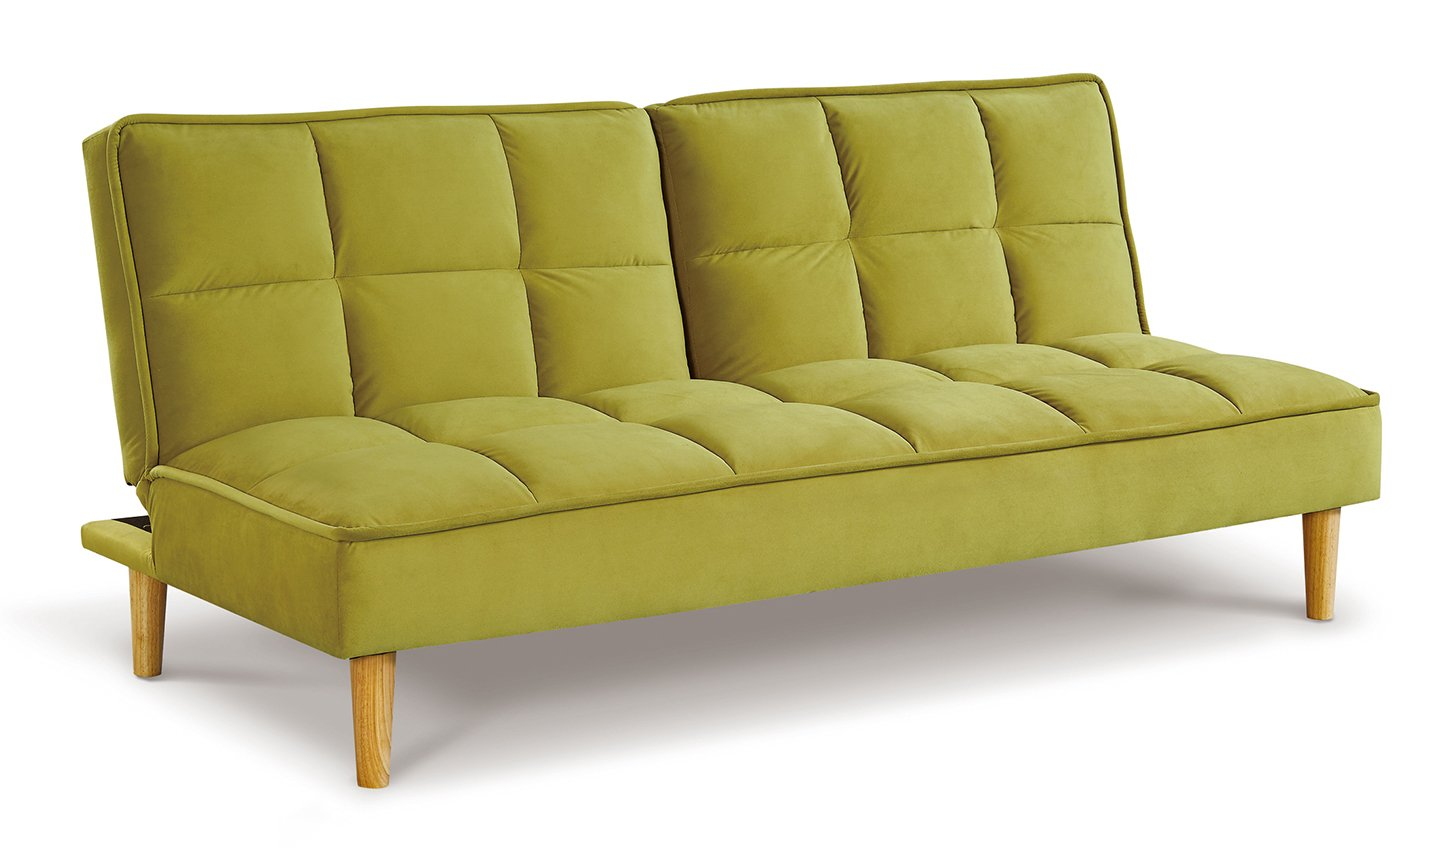 Lokken Green Velvet Sofa Bed